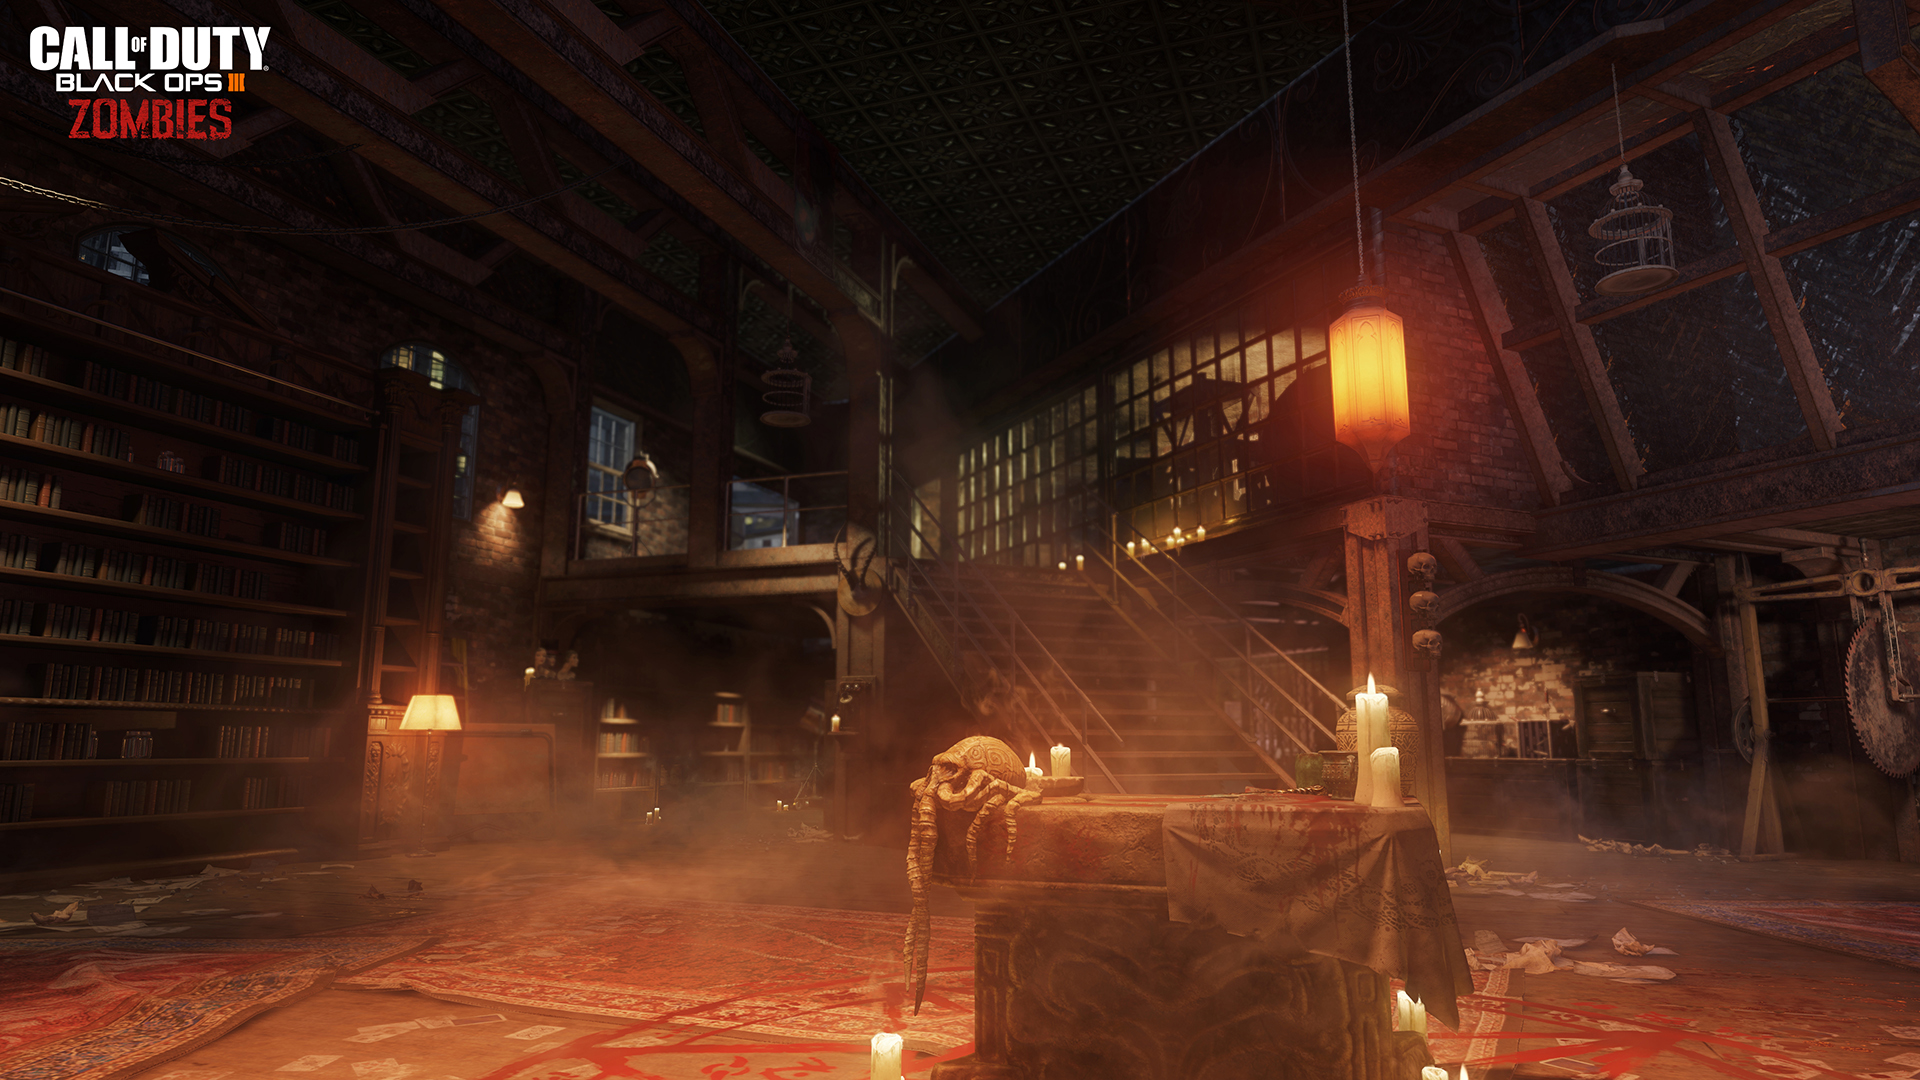 4 new official call of duty black ops 3 zombies